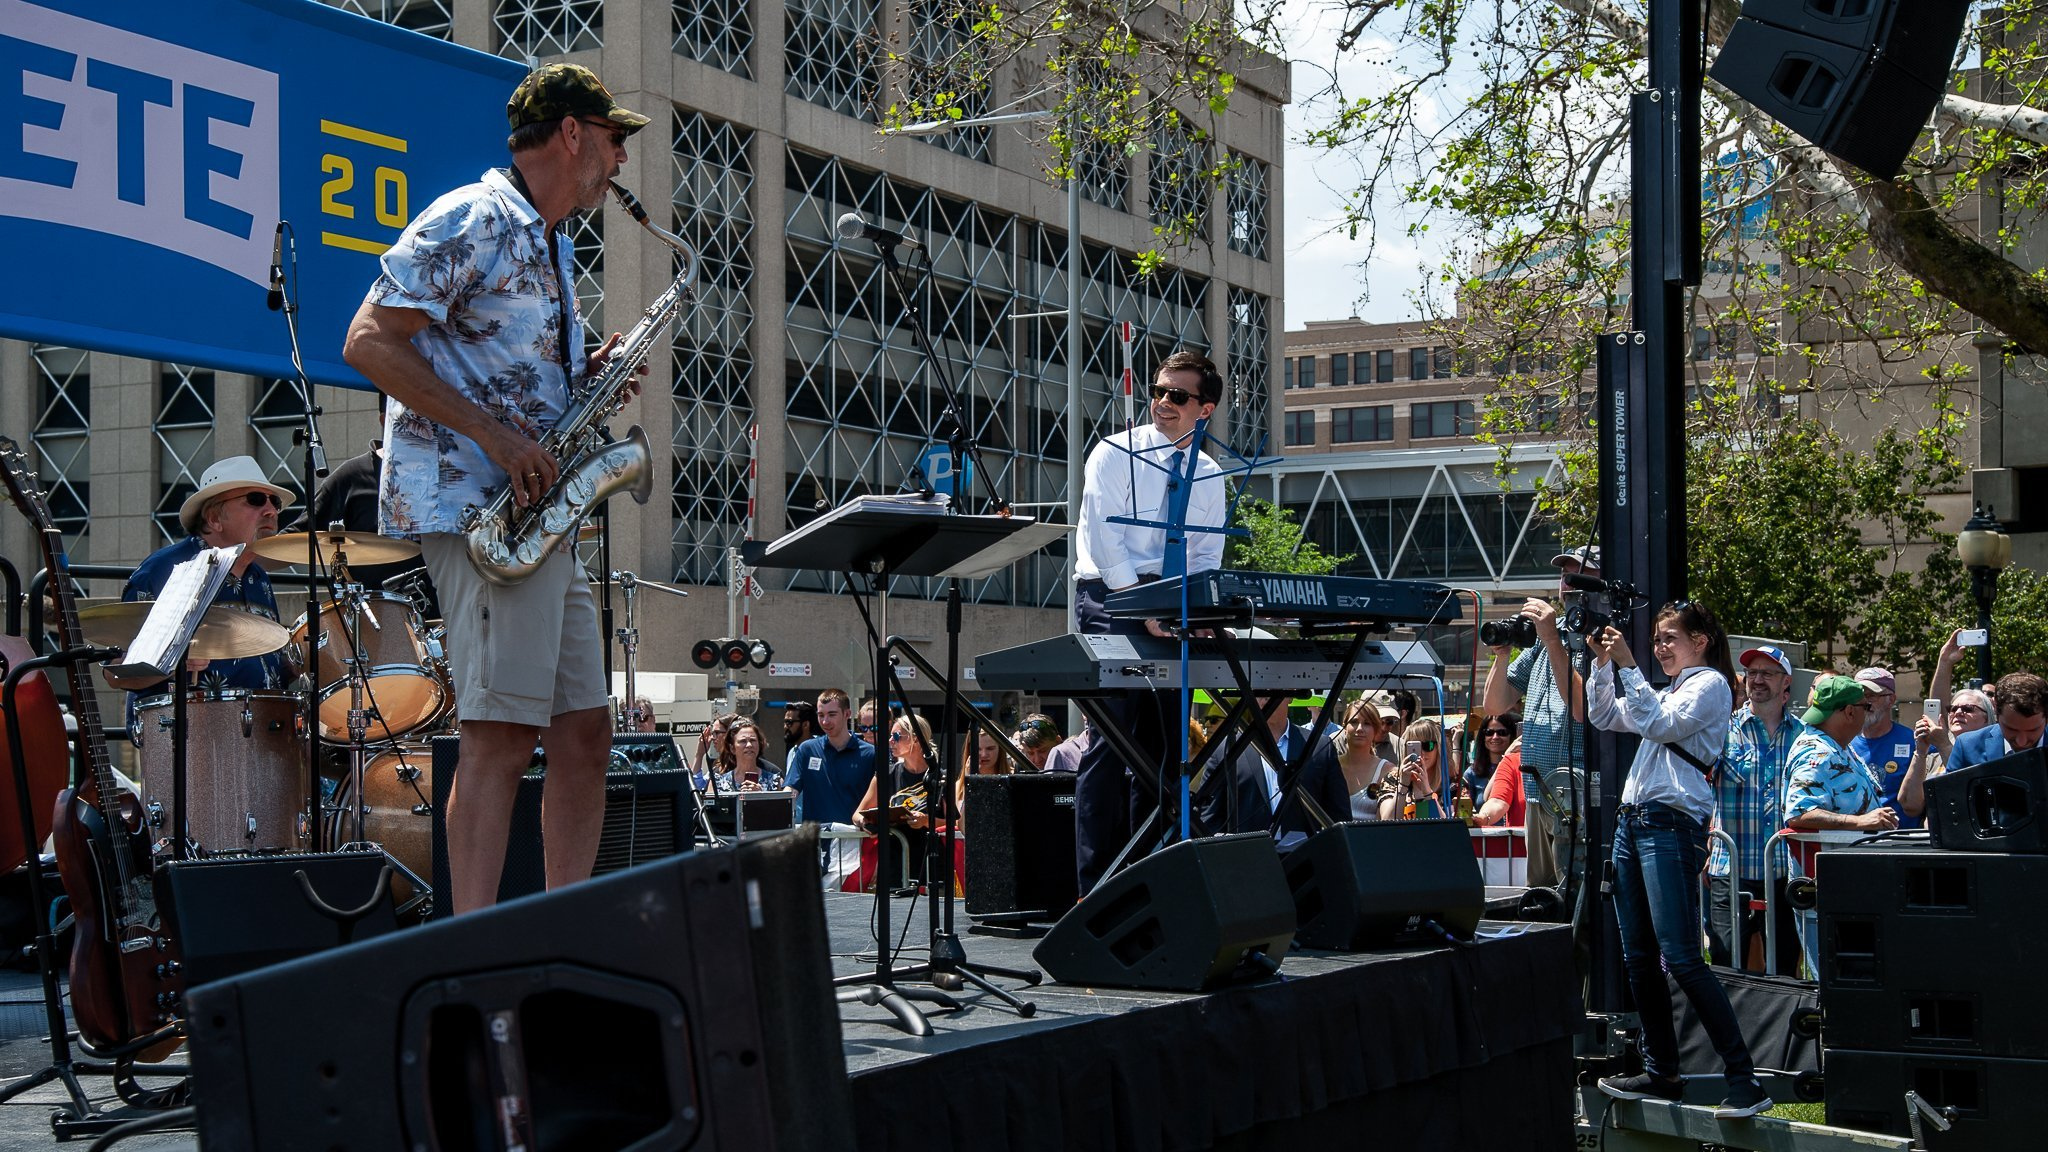 South Bend, Indiana Mayor Pete Buttigieg playing keyboards at a campaign event in Cedar Rapids, Iowa